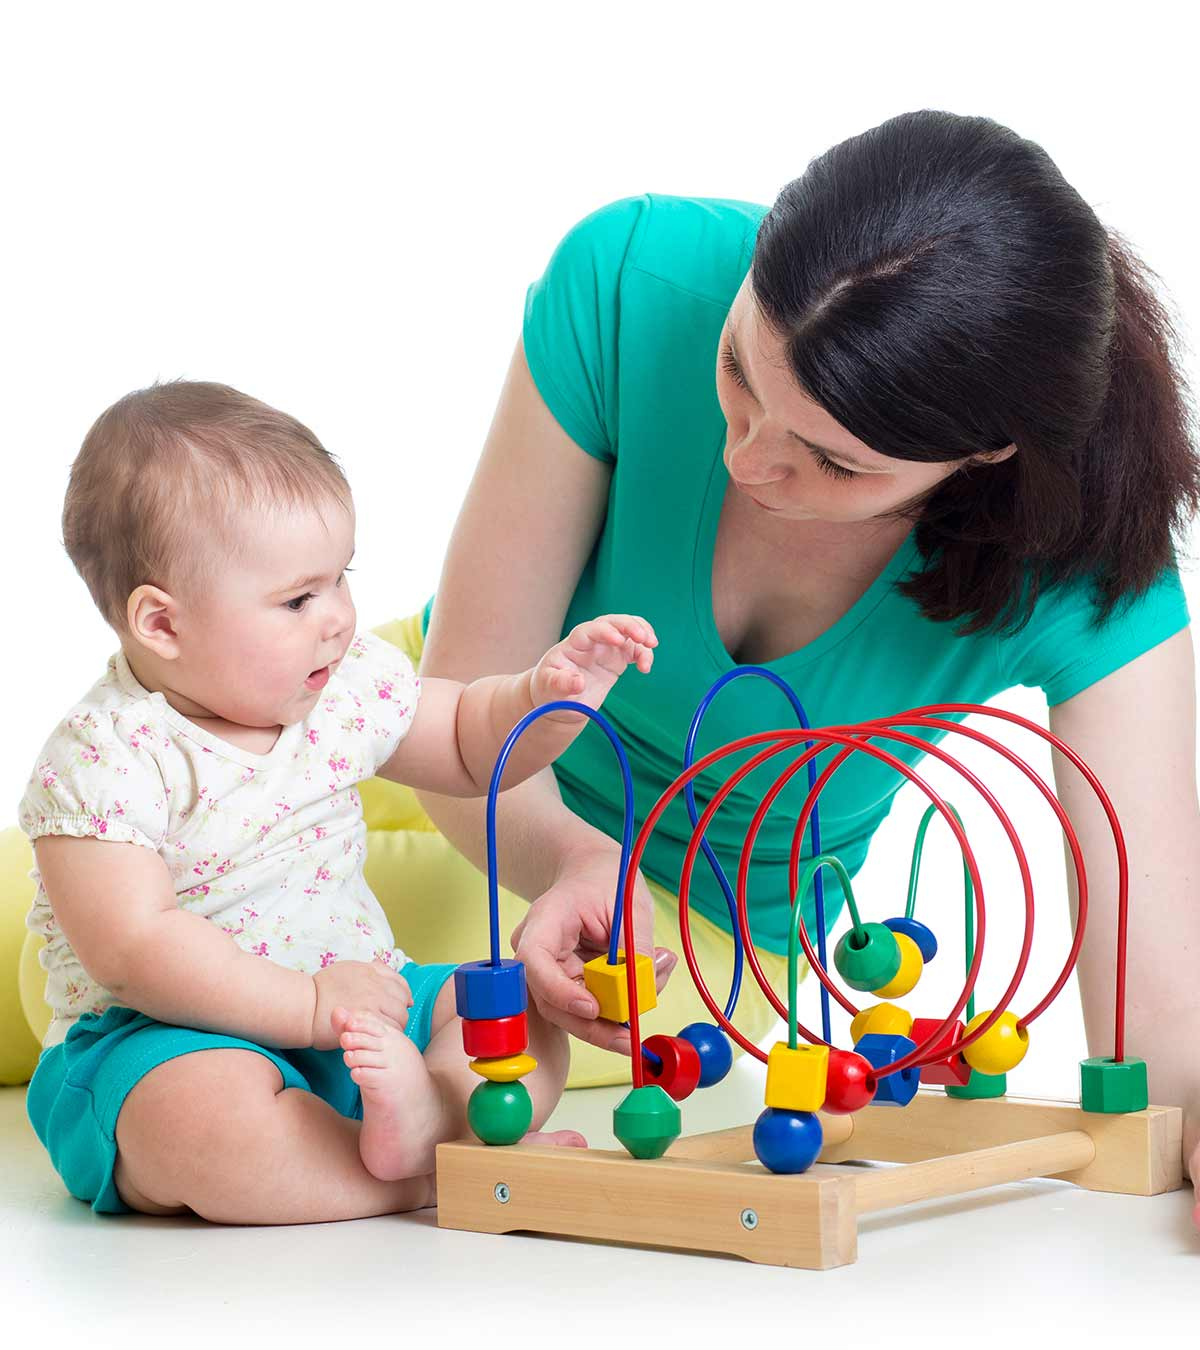 Newborn Toys Babycenter 6 Learning Activities For 10 Months Old Baby